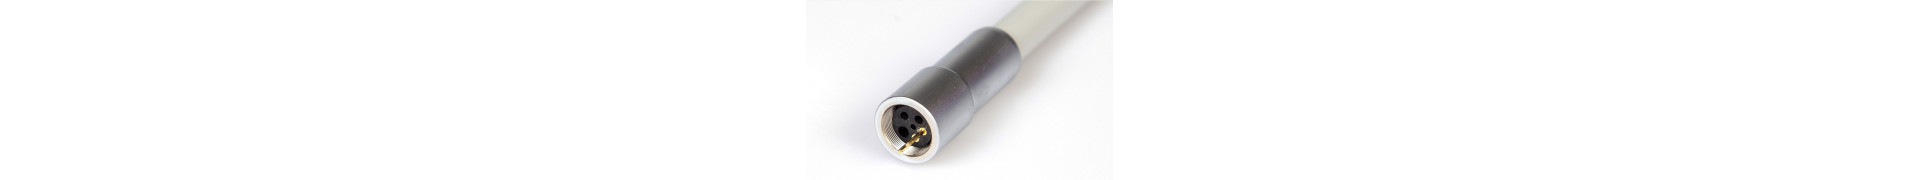 Drive Air s.a.s. - Hoses suitable for Chirana Medical micromotors